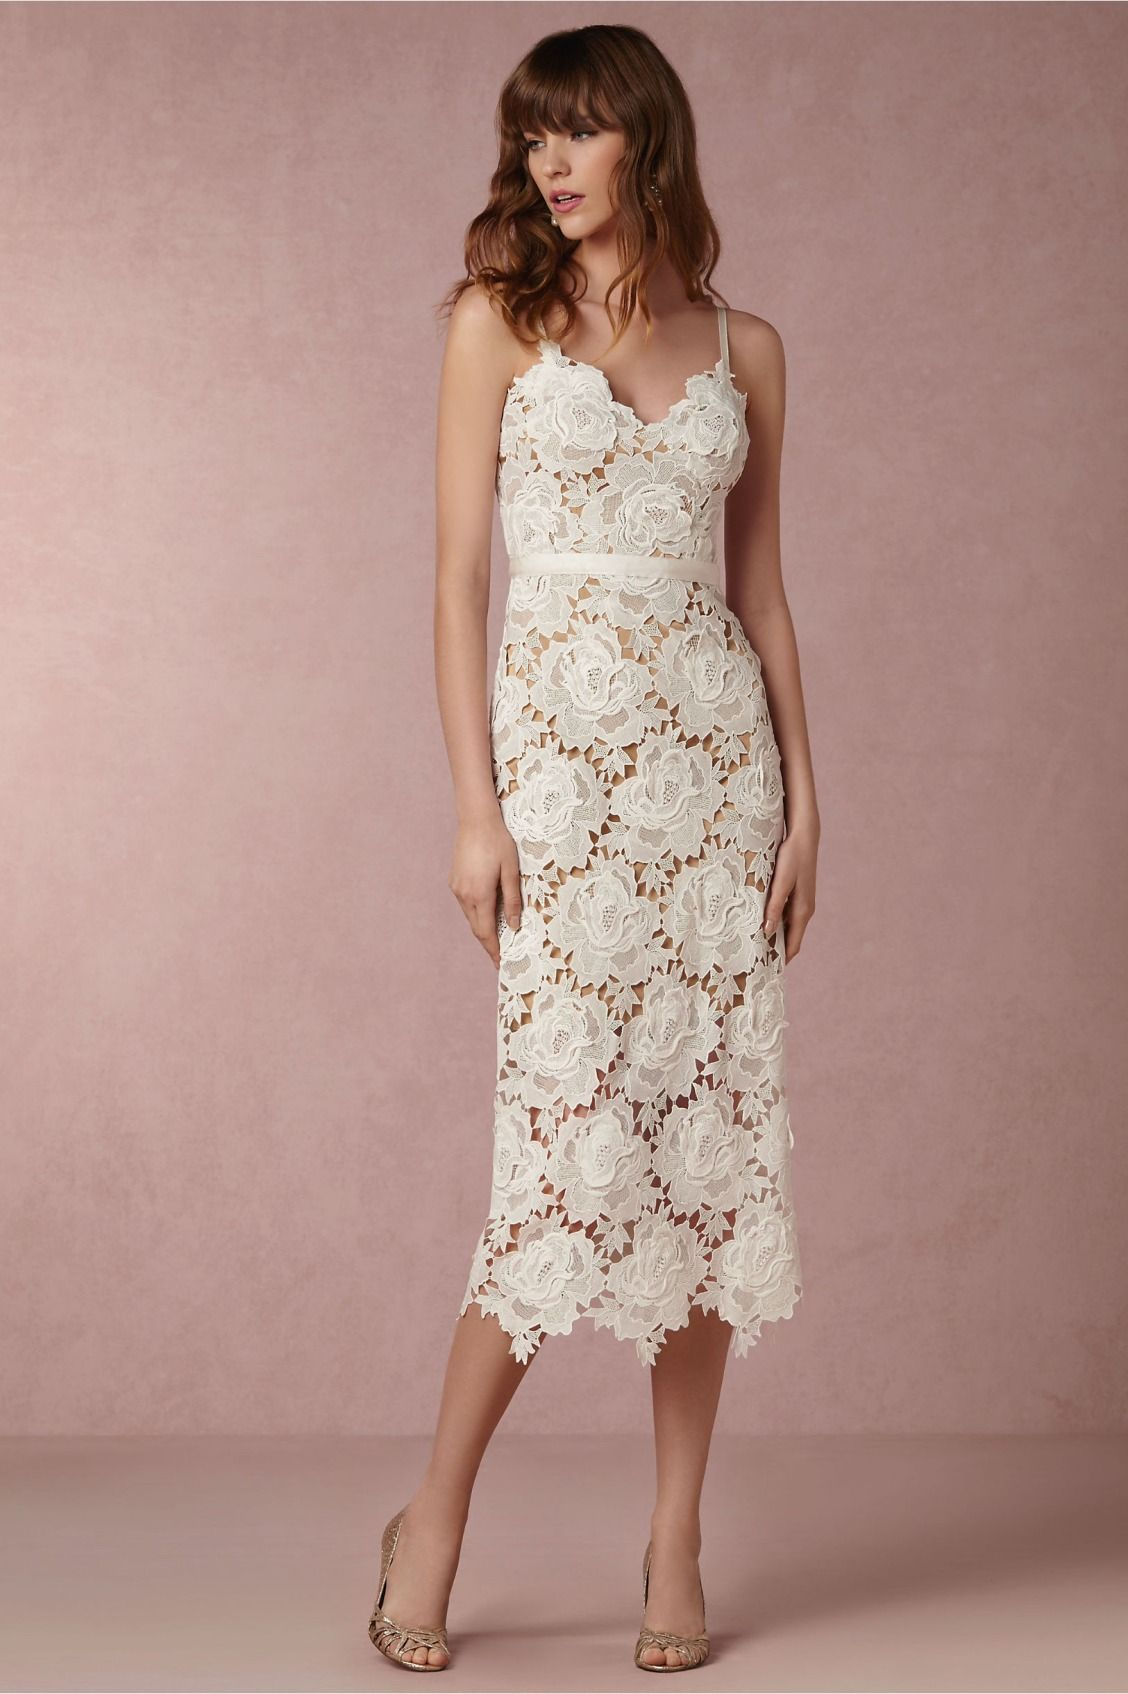 oh la la | Frida Dress from BHLDN | French Wedding Style | Pinterest ...